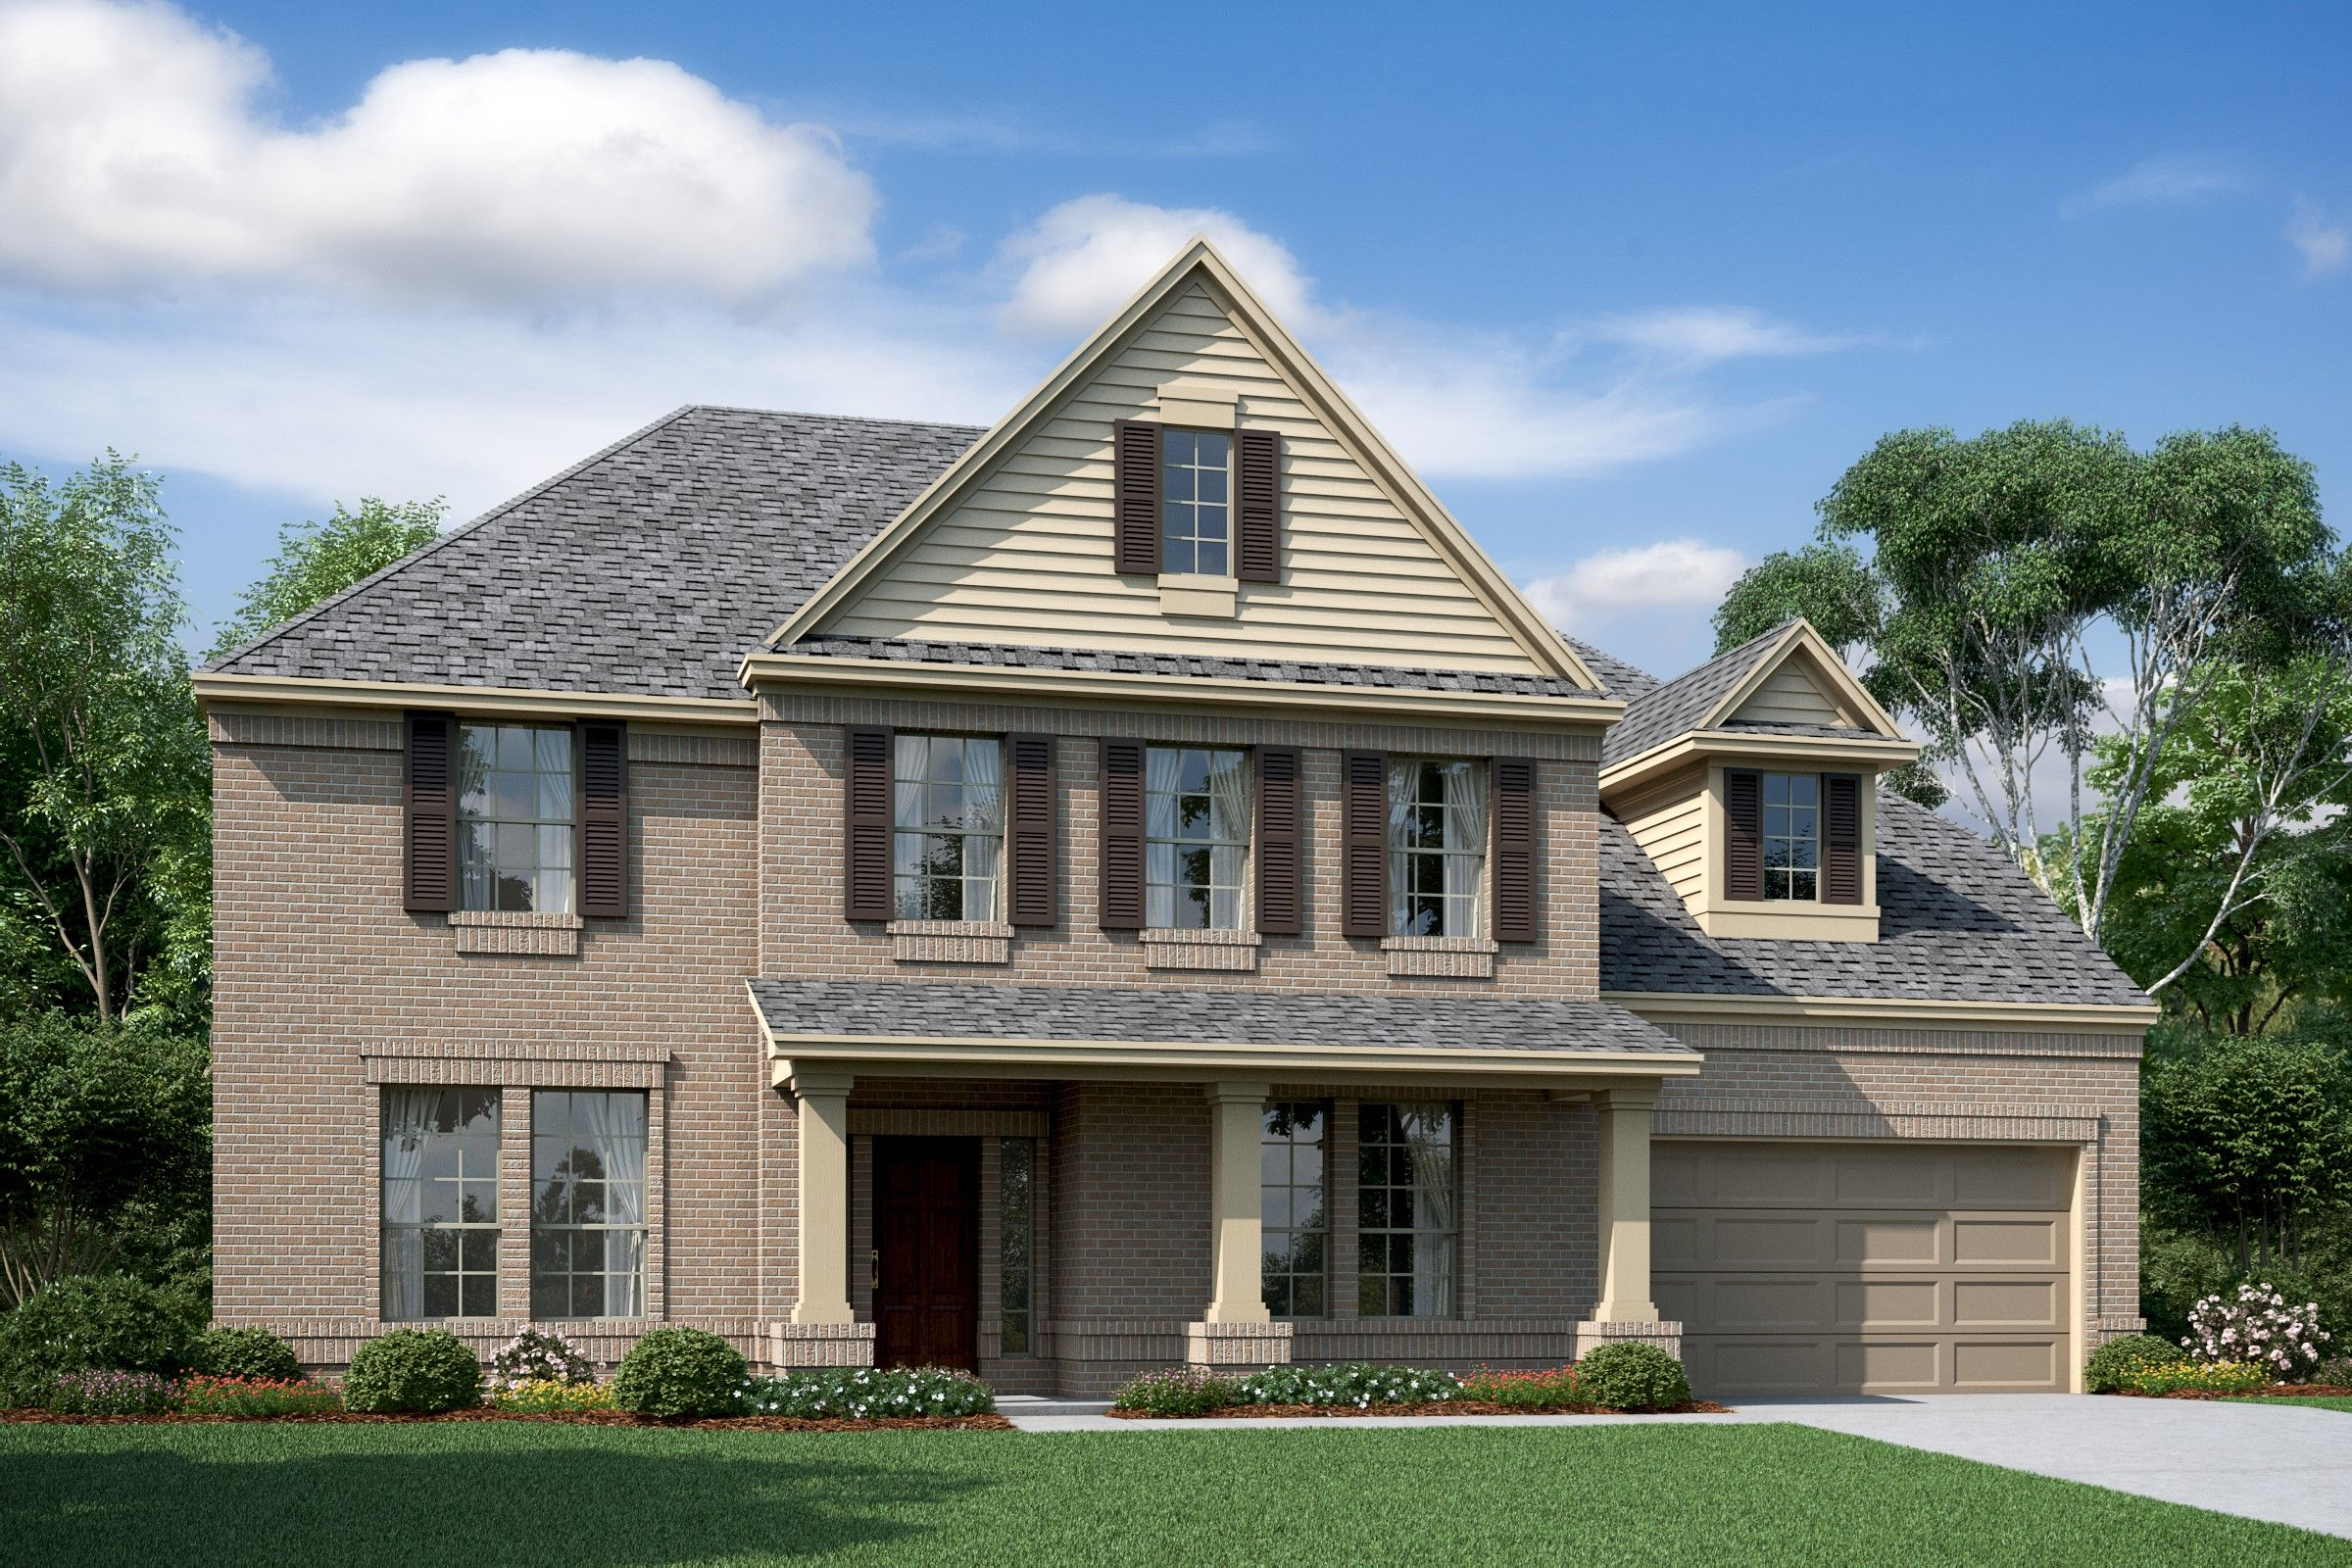 Single Family for Sale at Lauren 14810 Starwood Drive, Homesite 12 Baytown, Texas 77523 United States